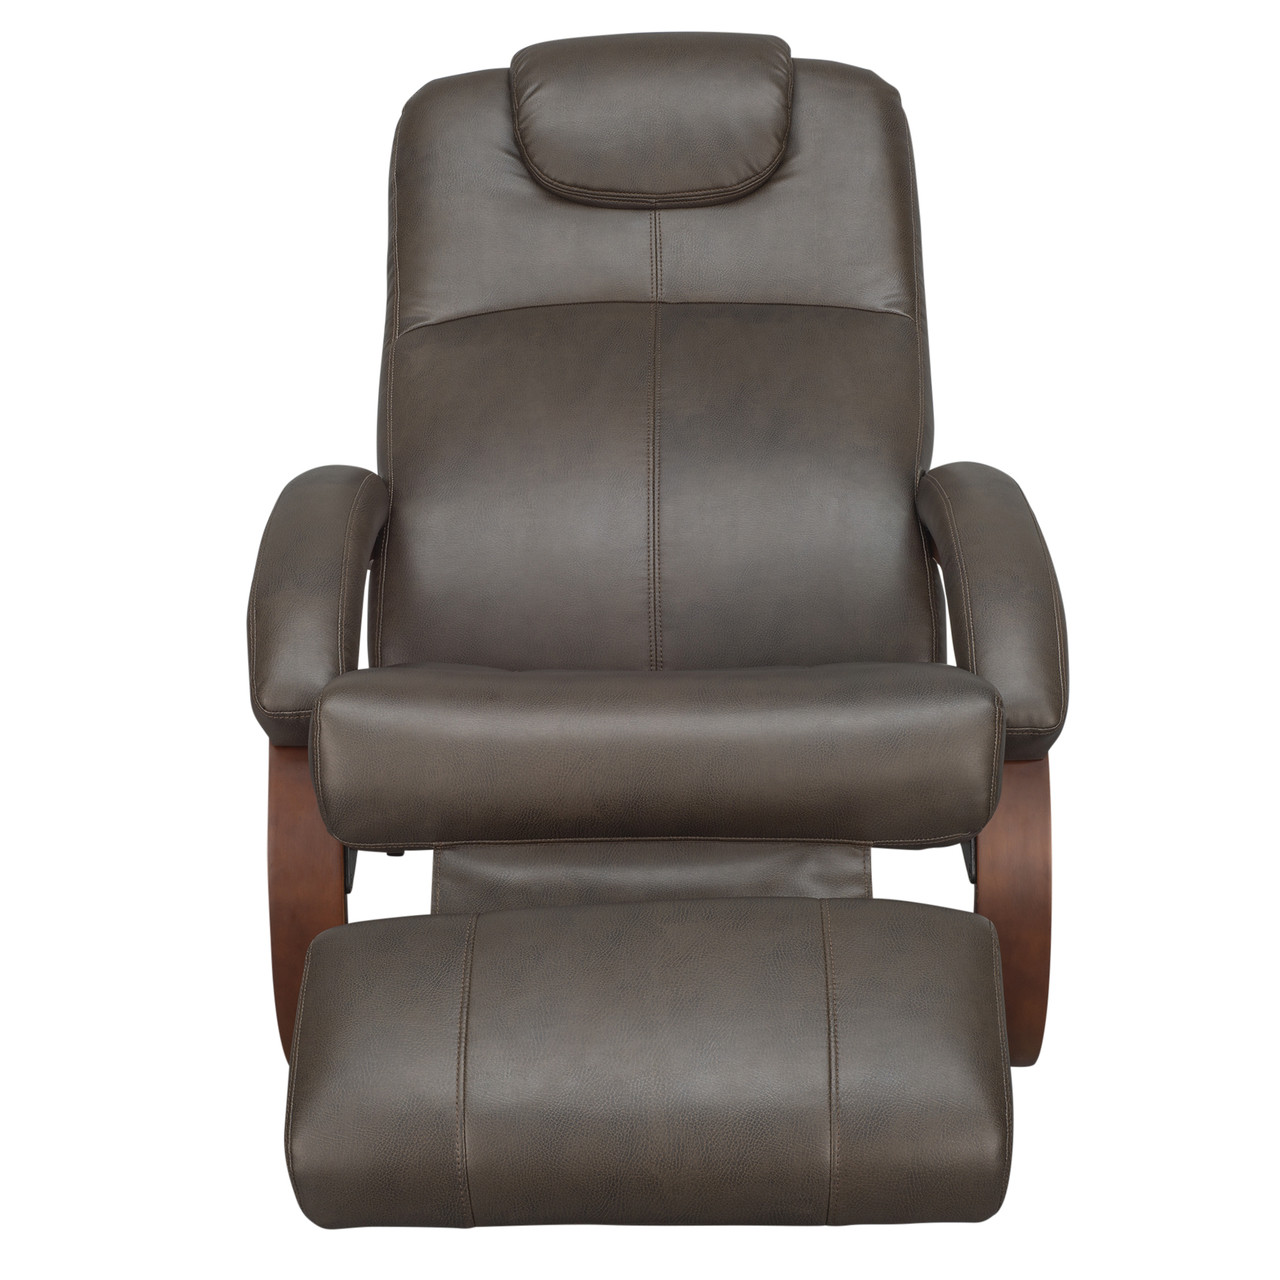 Recpro Charles 28 Quot Rv Euro Chair Recliner Modern Rv